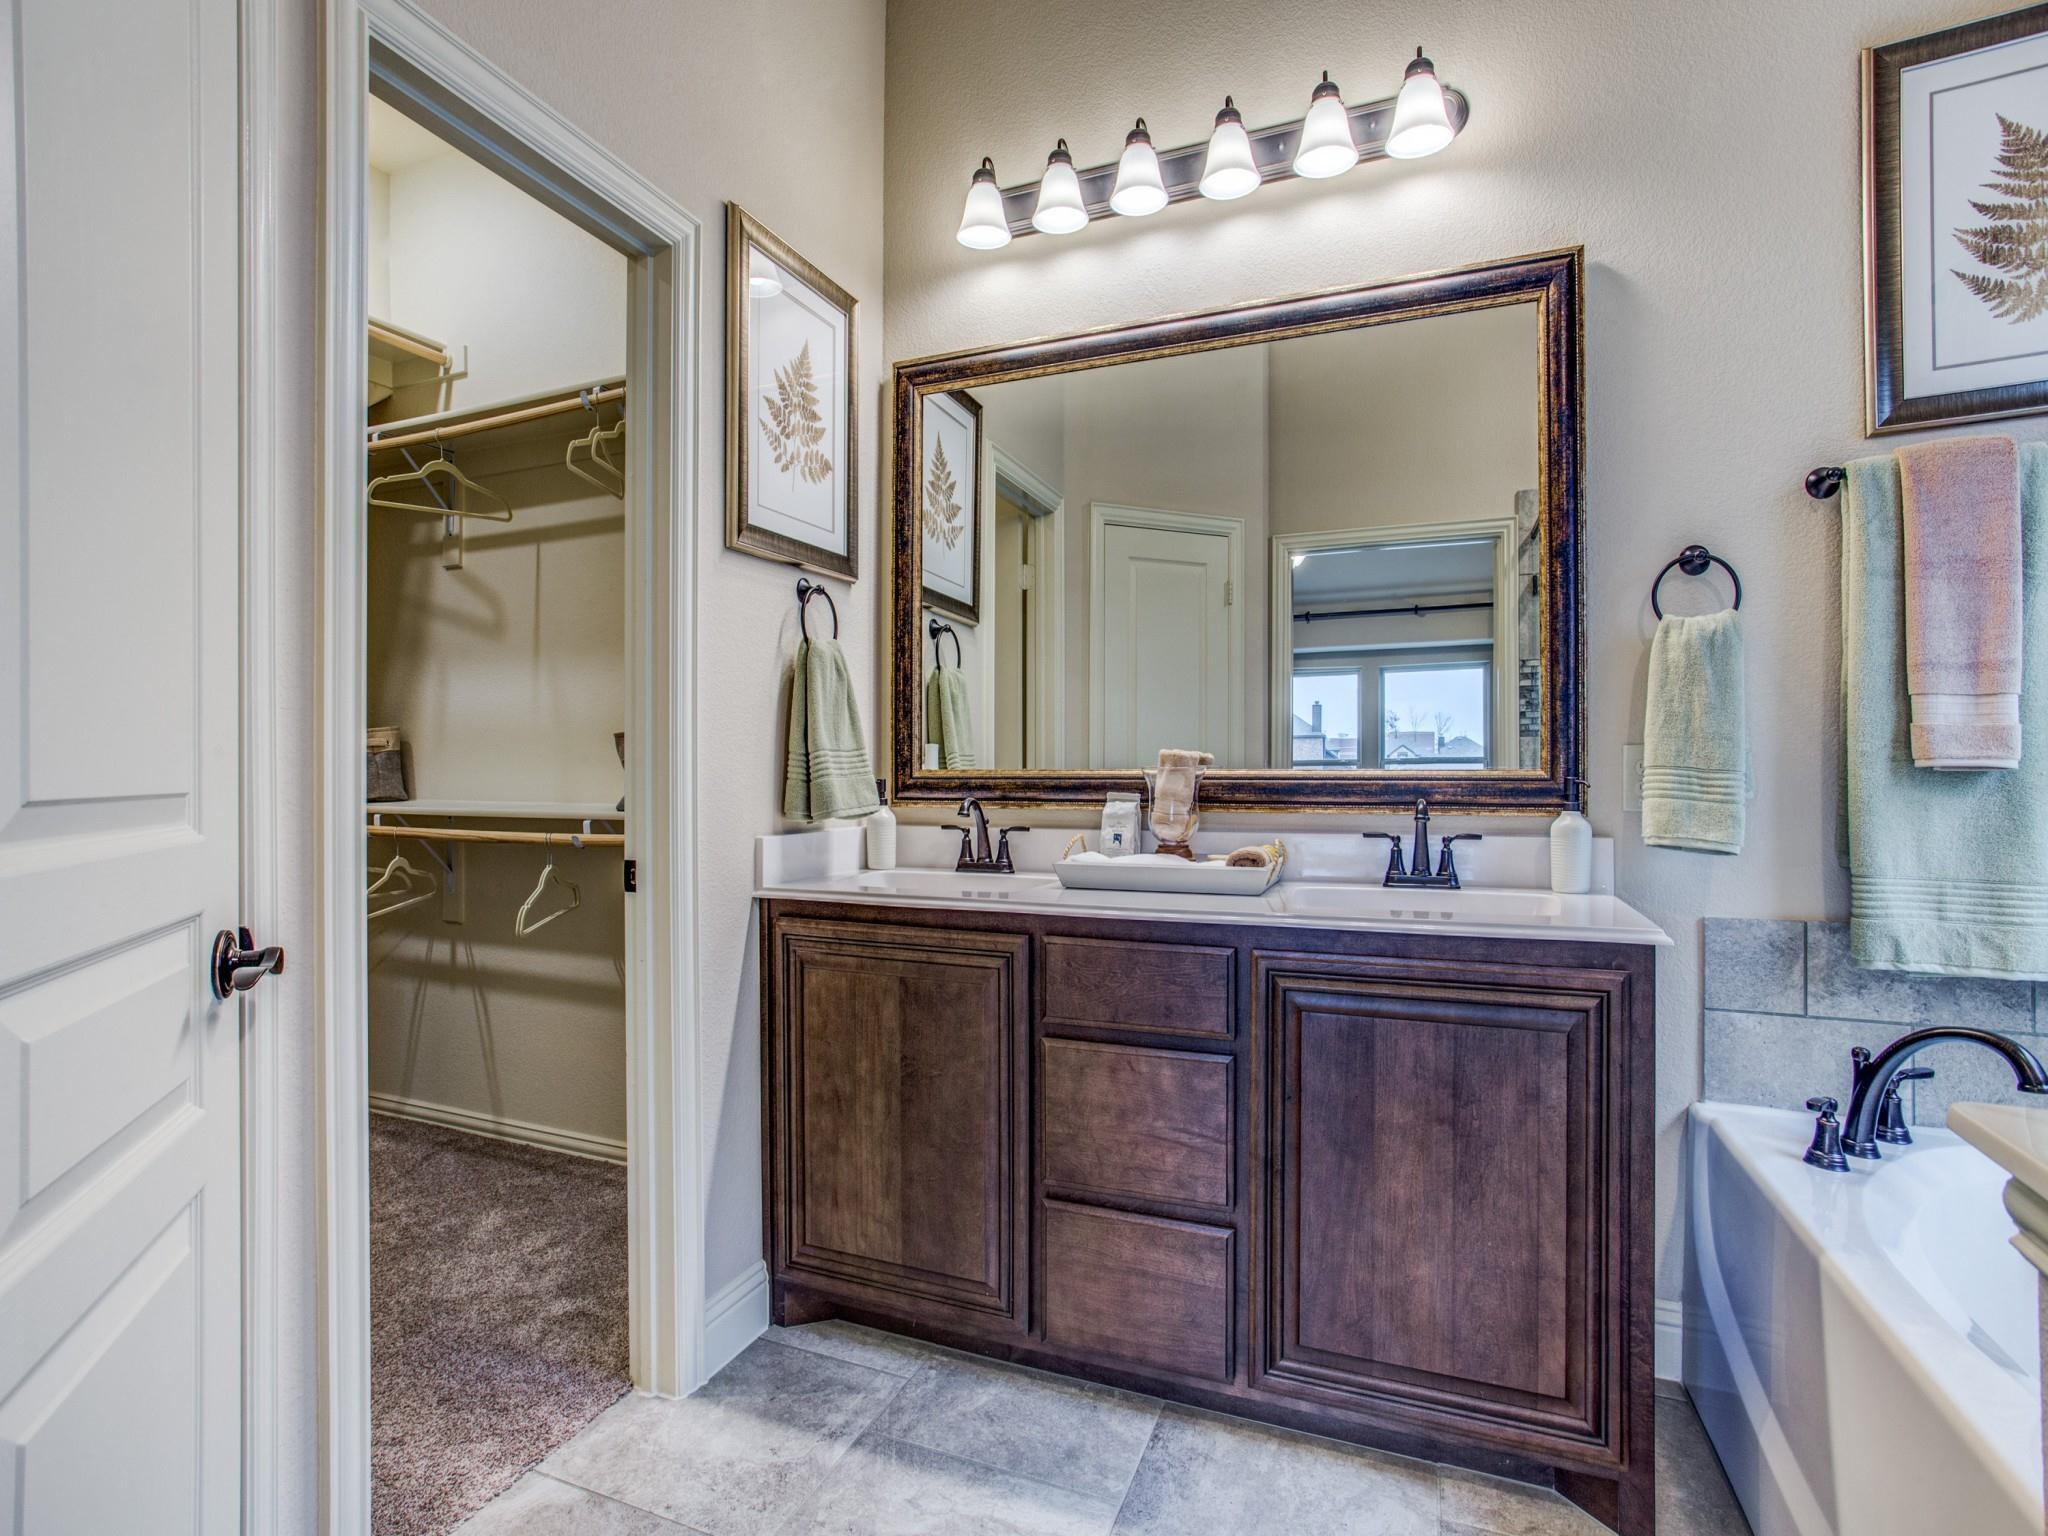 Bathroom featured in the Dogwood III By Bloomfield Homes in Dallas, TX